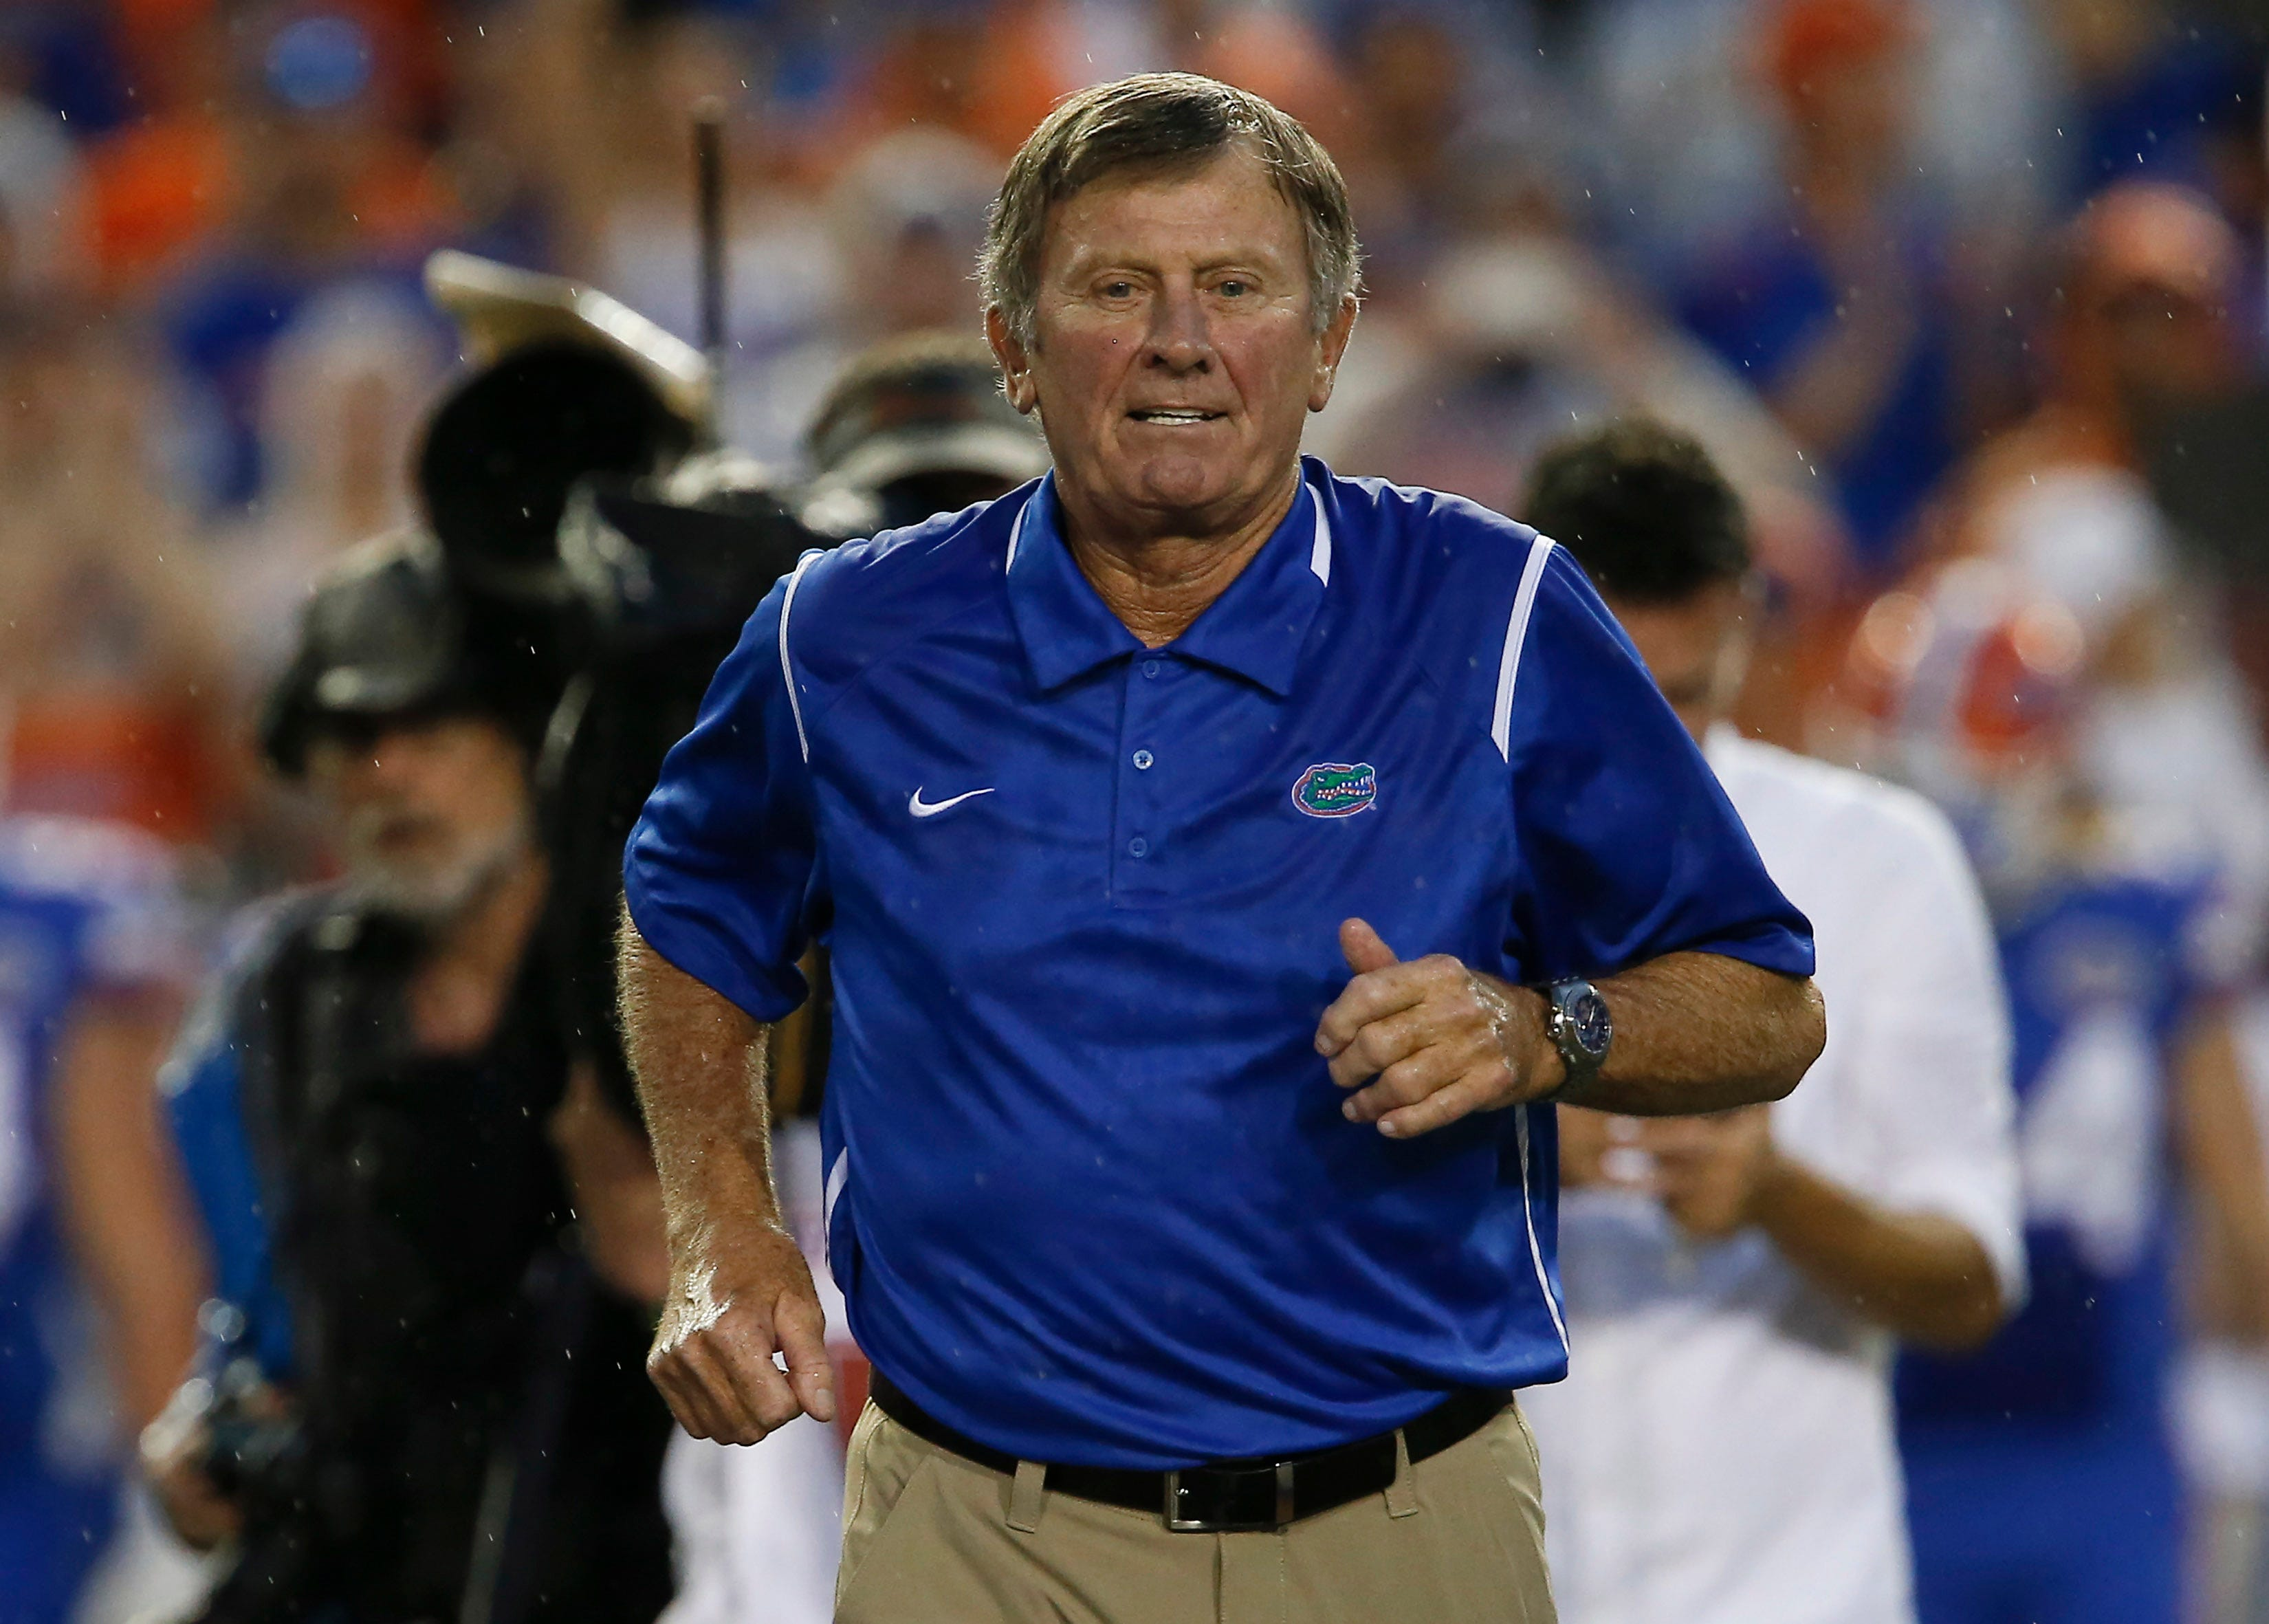 636378908127029964-USP-NCAA-Football--Massachusetts-at-Florida Steve Spurrier takes a shot at LSU at Independence Bowl luncheon